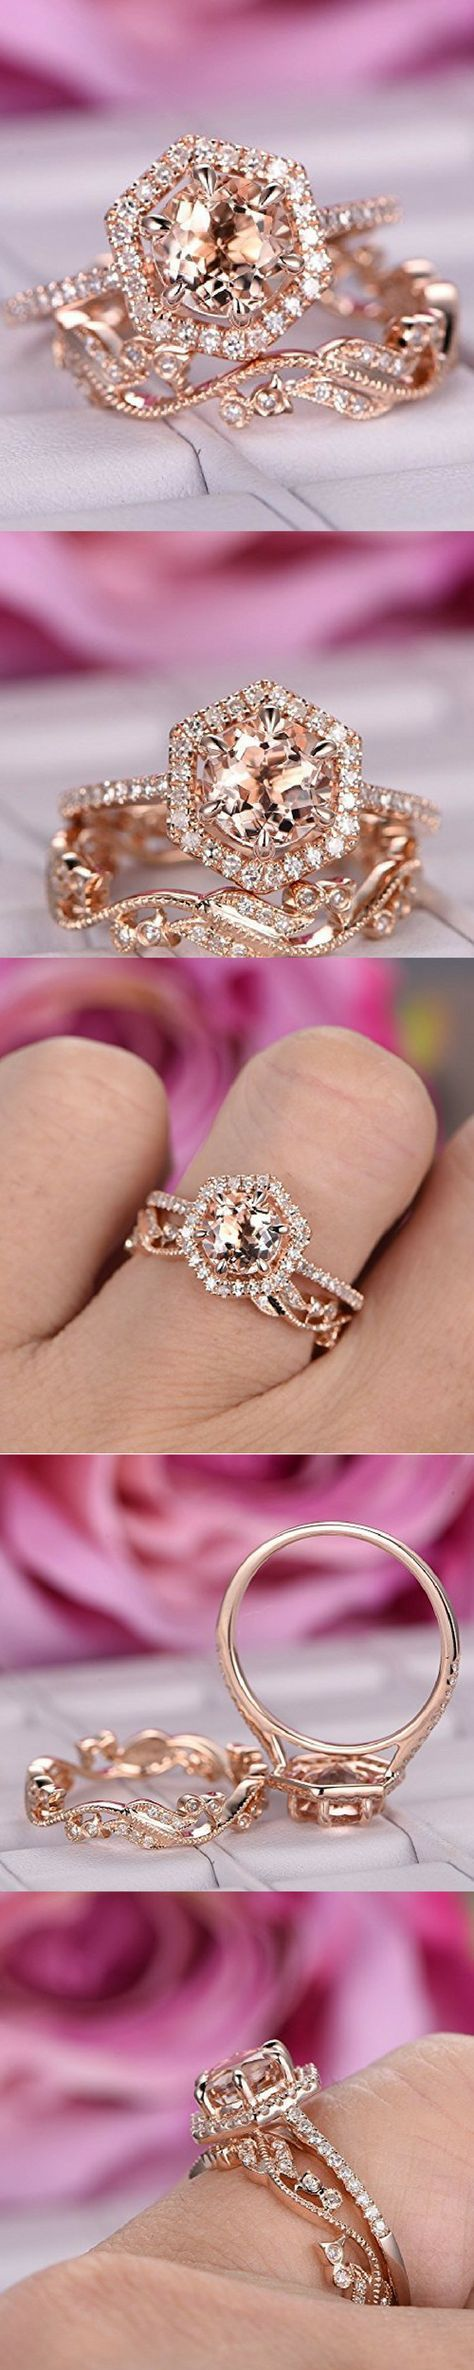 The 1789 best {My AcceSSorieZ} images on Pinterest | Engagement ...